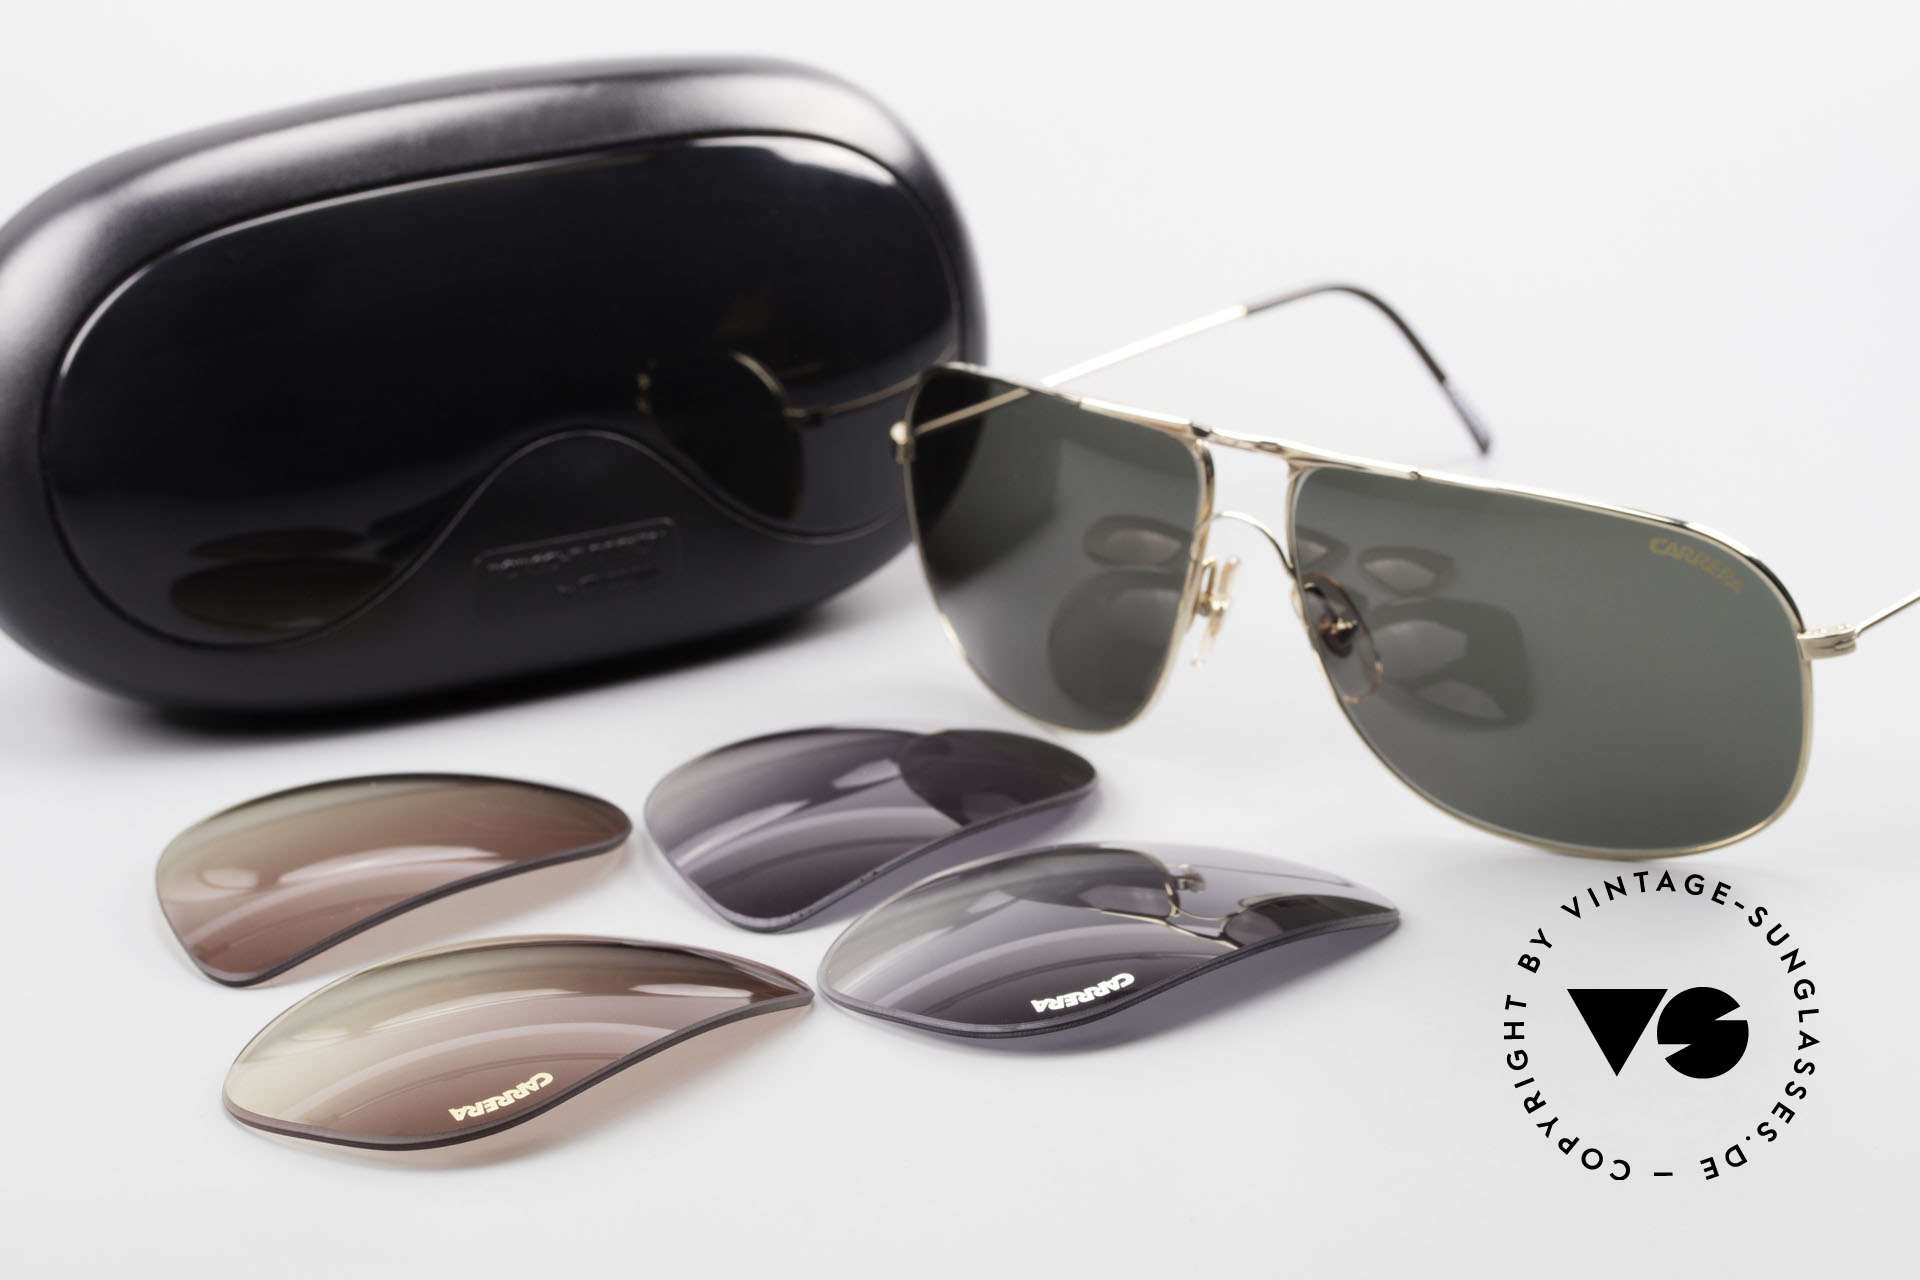 Carrera 5422 Shades With 3 Sets of Lenses, Size: extra large, Made for Men